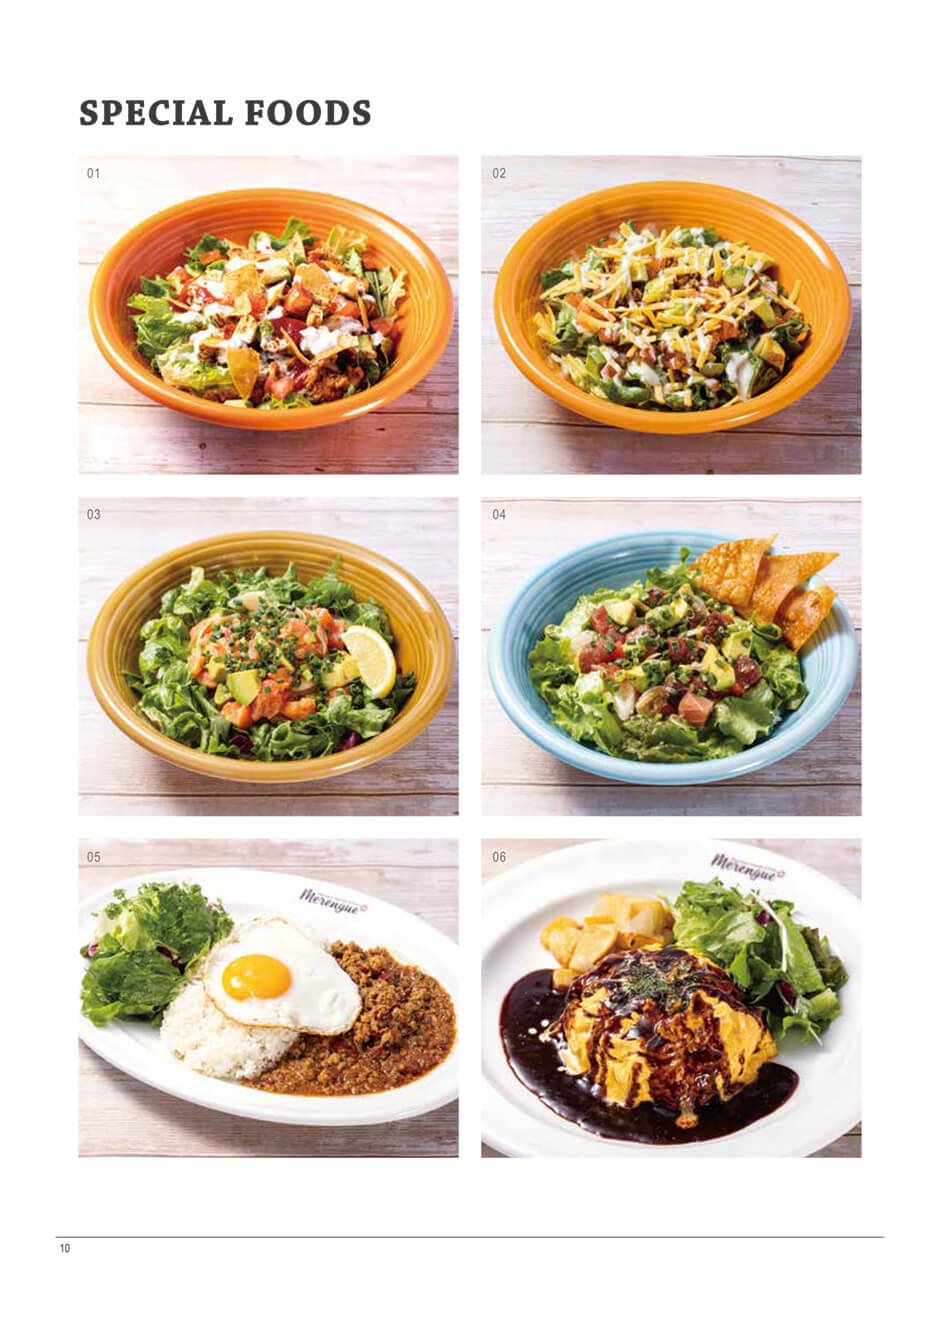 SPECIAL FOODS 商品画像